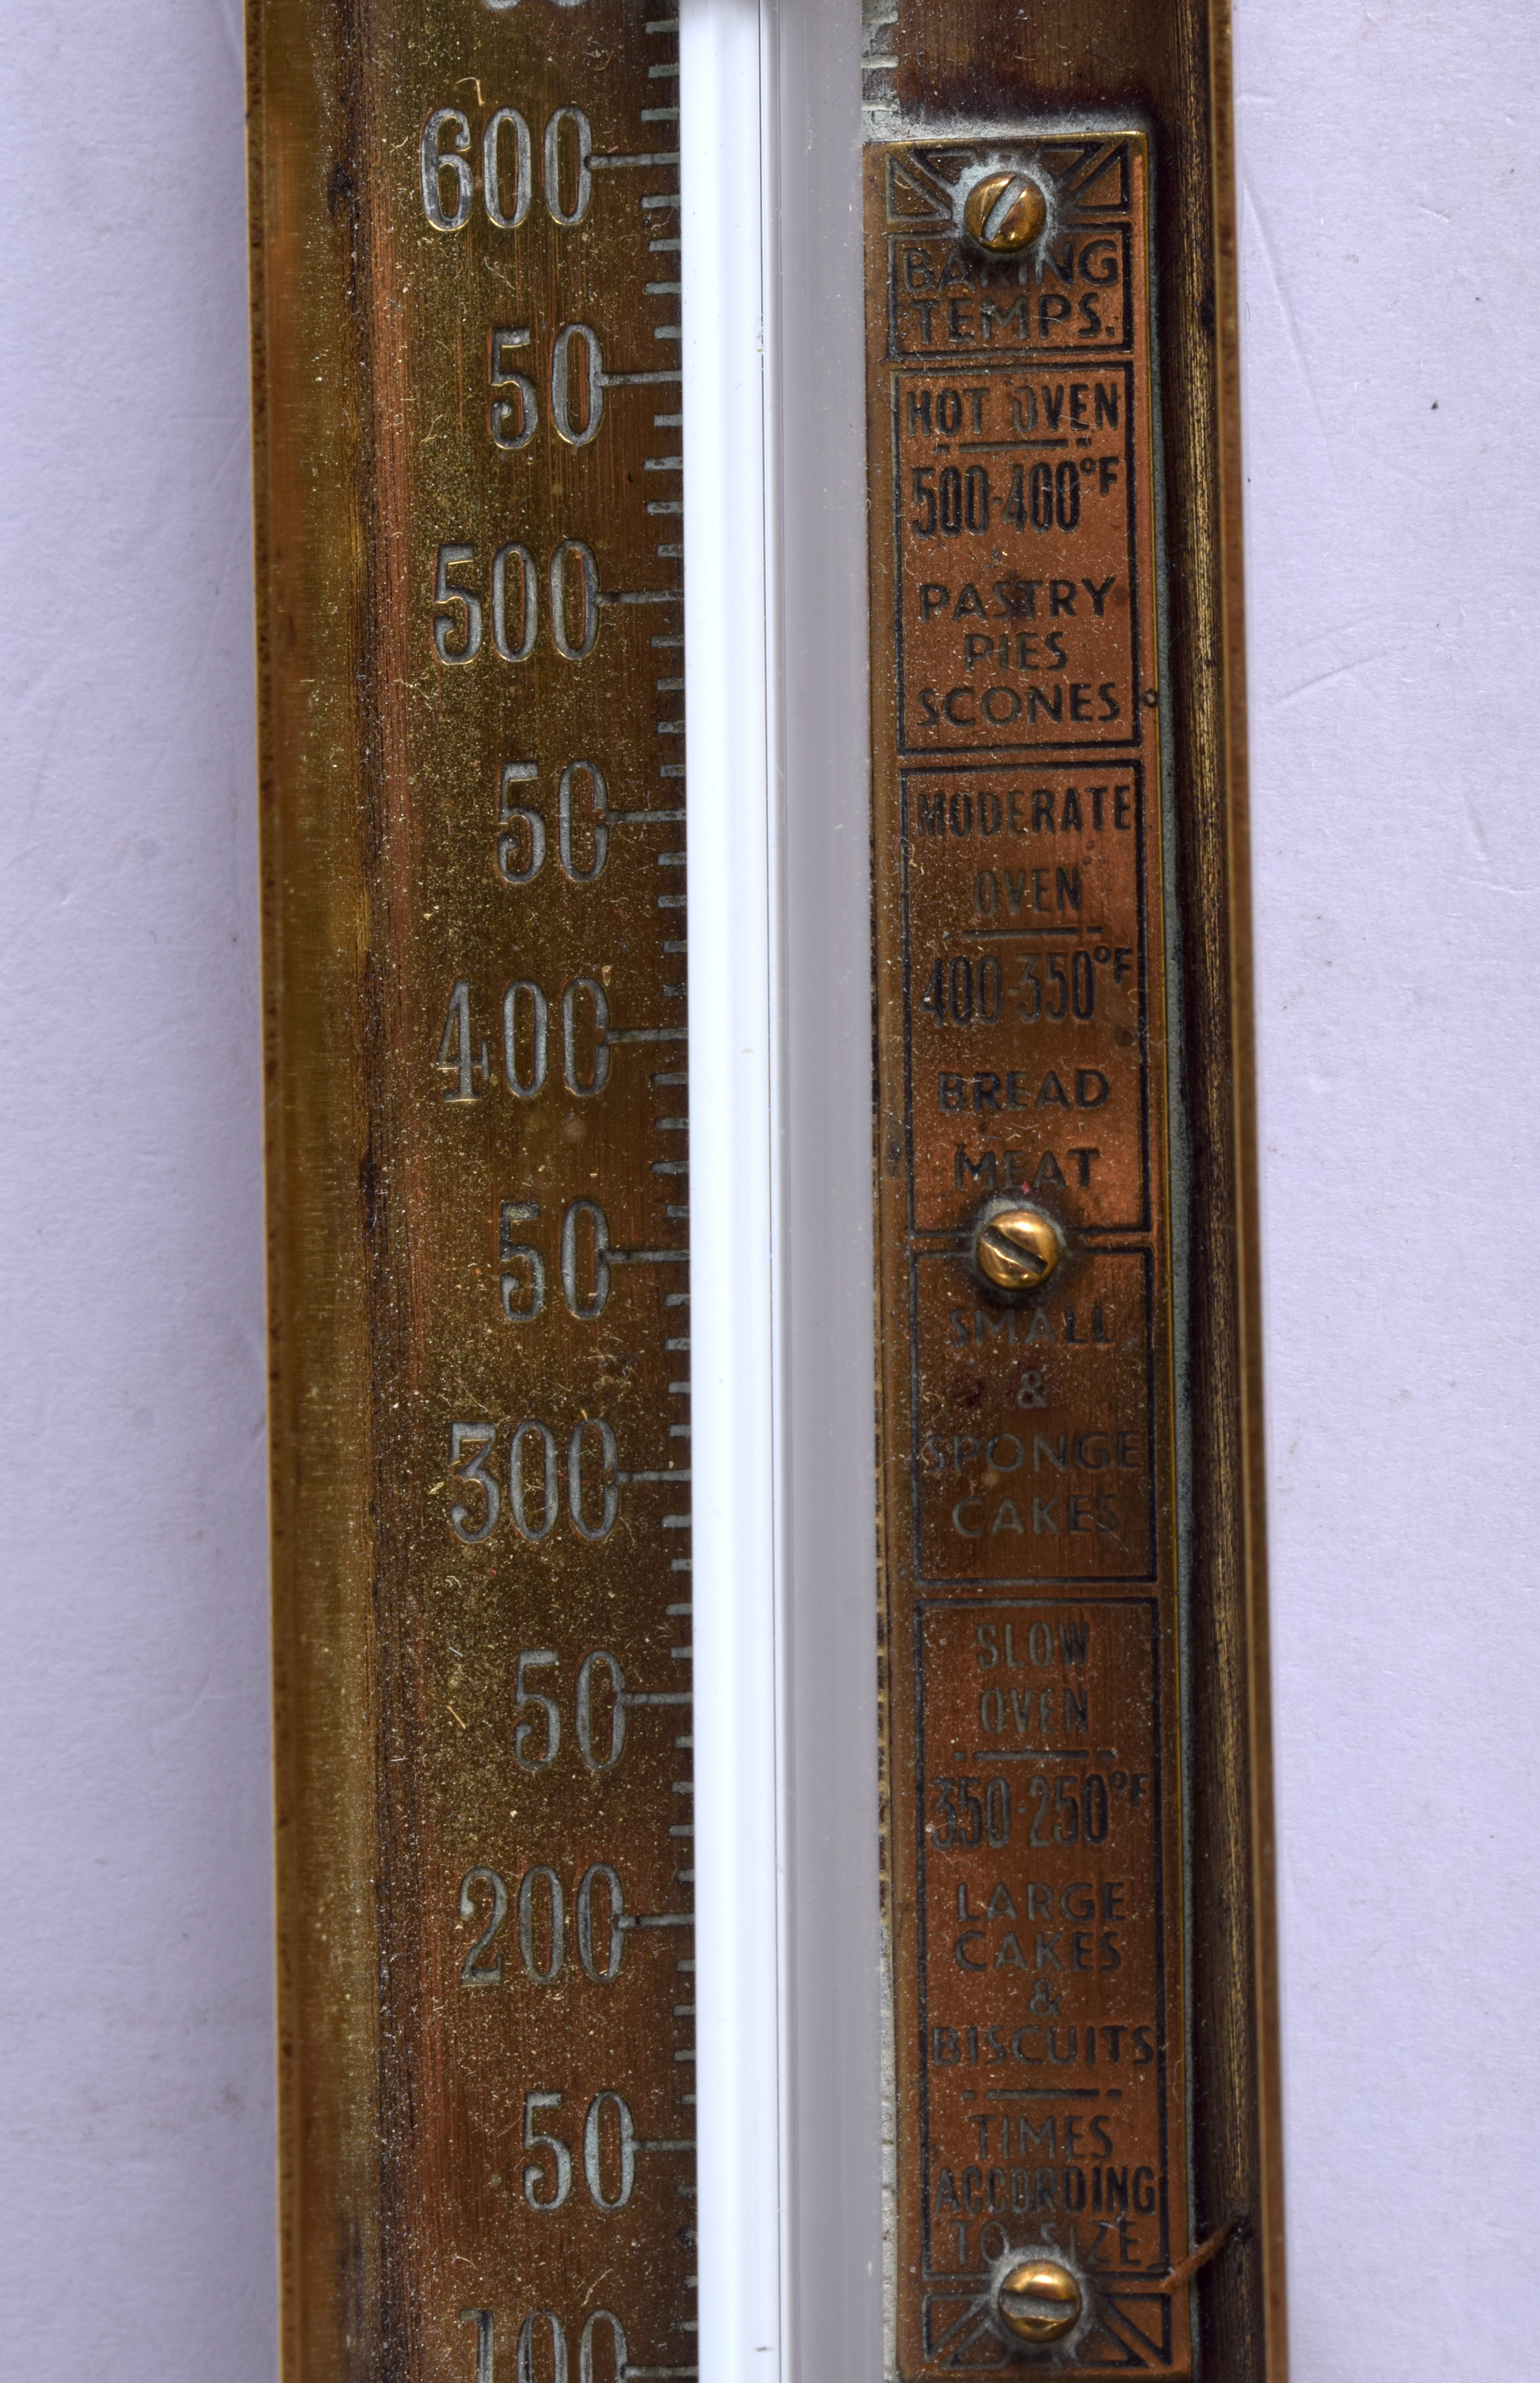 A RARE ANTIQUE BRASS BAKING TEMPERATURE THERMOMETER. 18 cm high. - Image 4 of 4